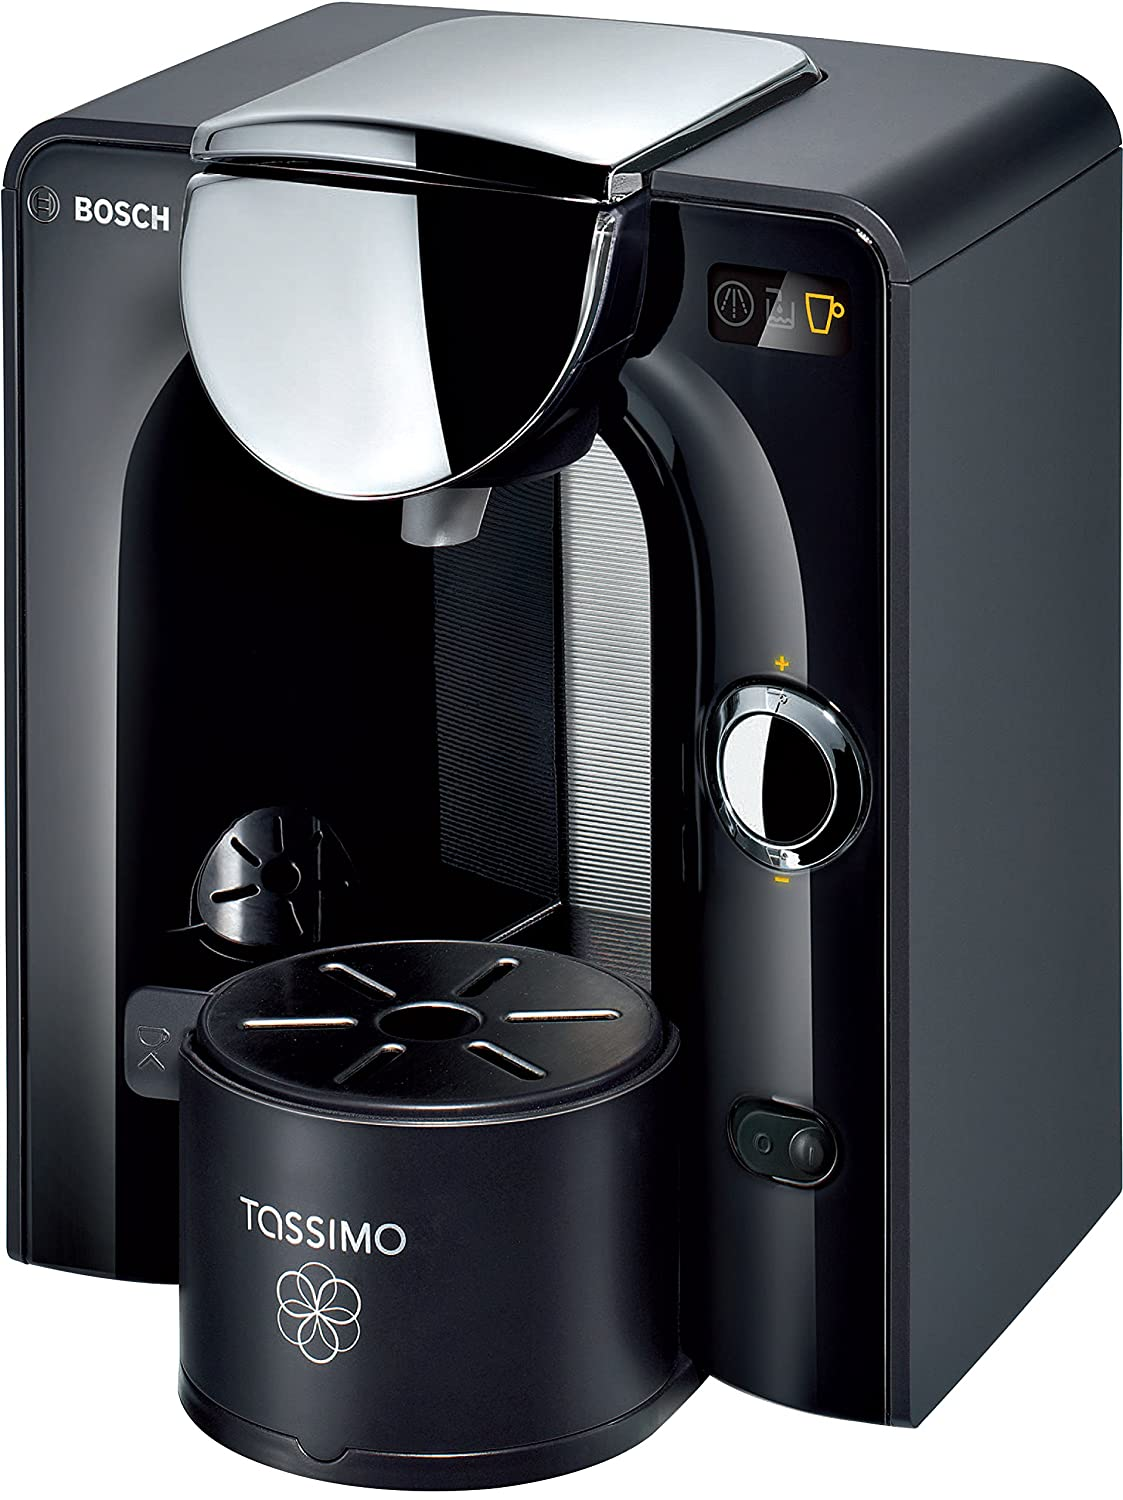 Bosch Tassimo Charmy TAS5542GB Coffee Machine, 1300 Watt, 1.4 Litre - Black BSHAE